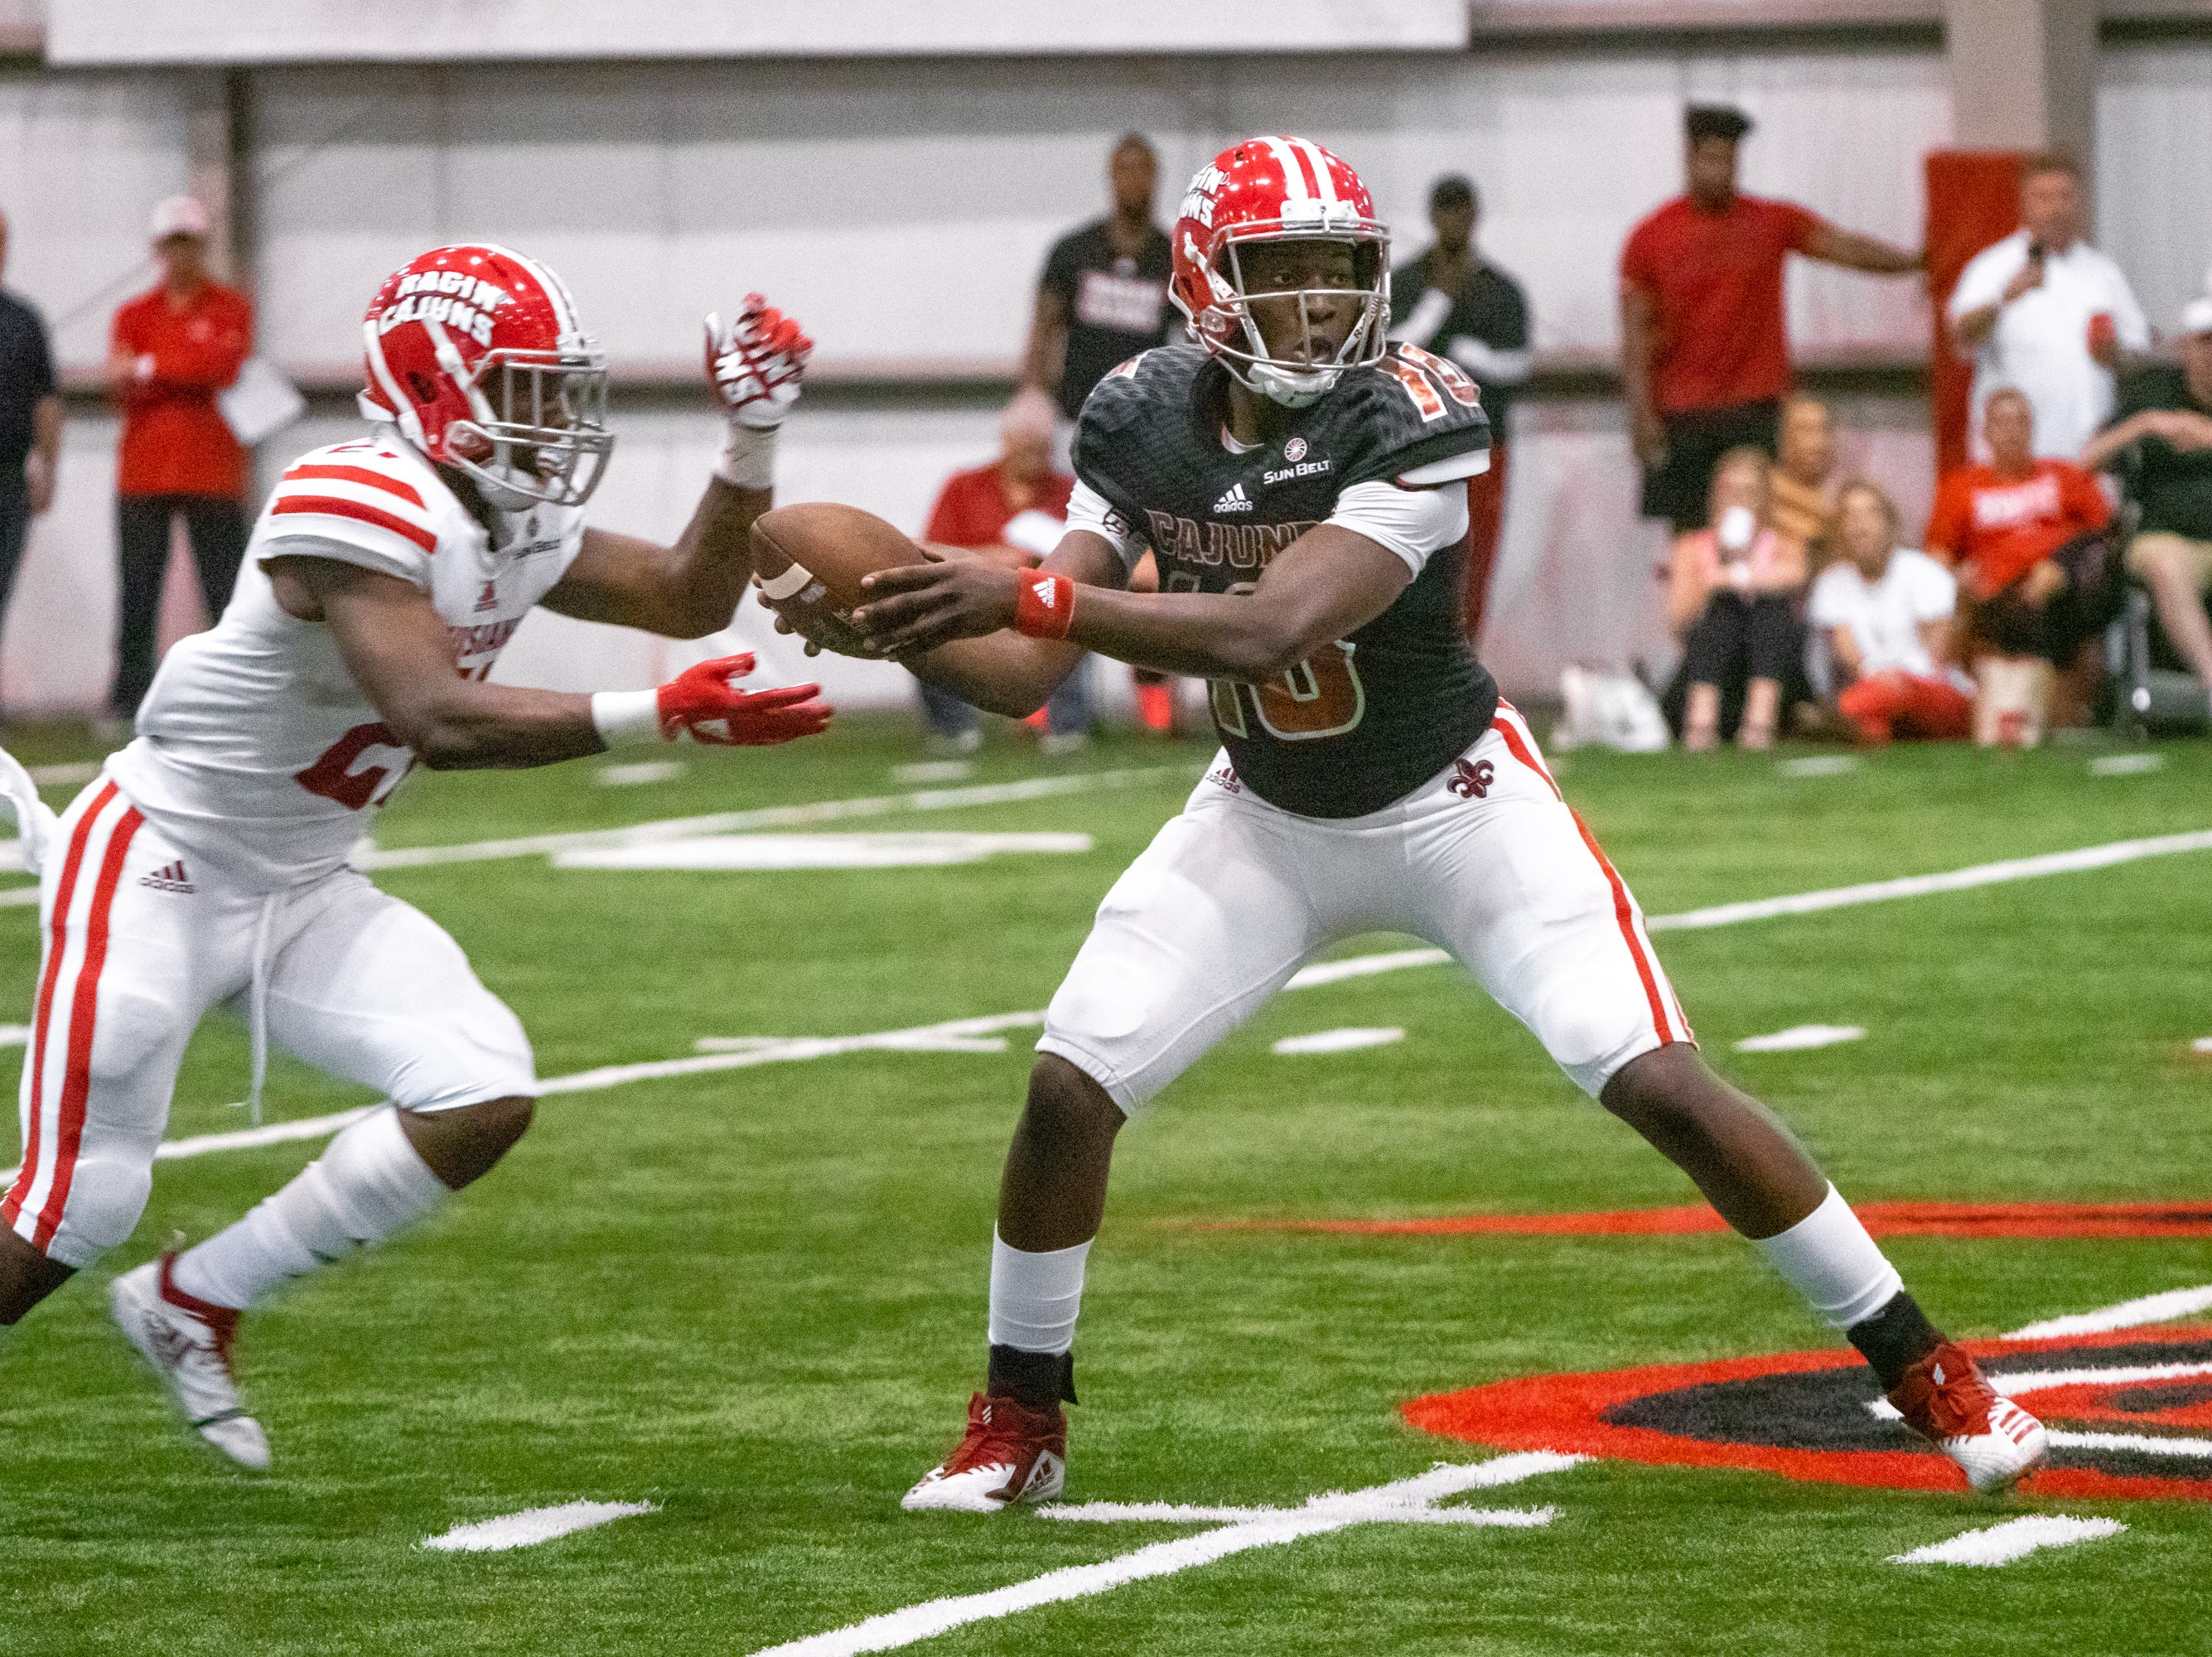 UL's quarterback Clifton McDowell hands off the ball during the play as the Ragin' Cajuns football team plays their annual Spring football game against one another in the Leon Moncla trainig facility on April 13, 2019.